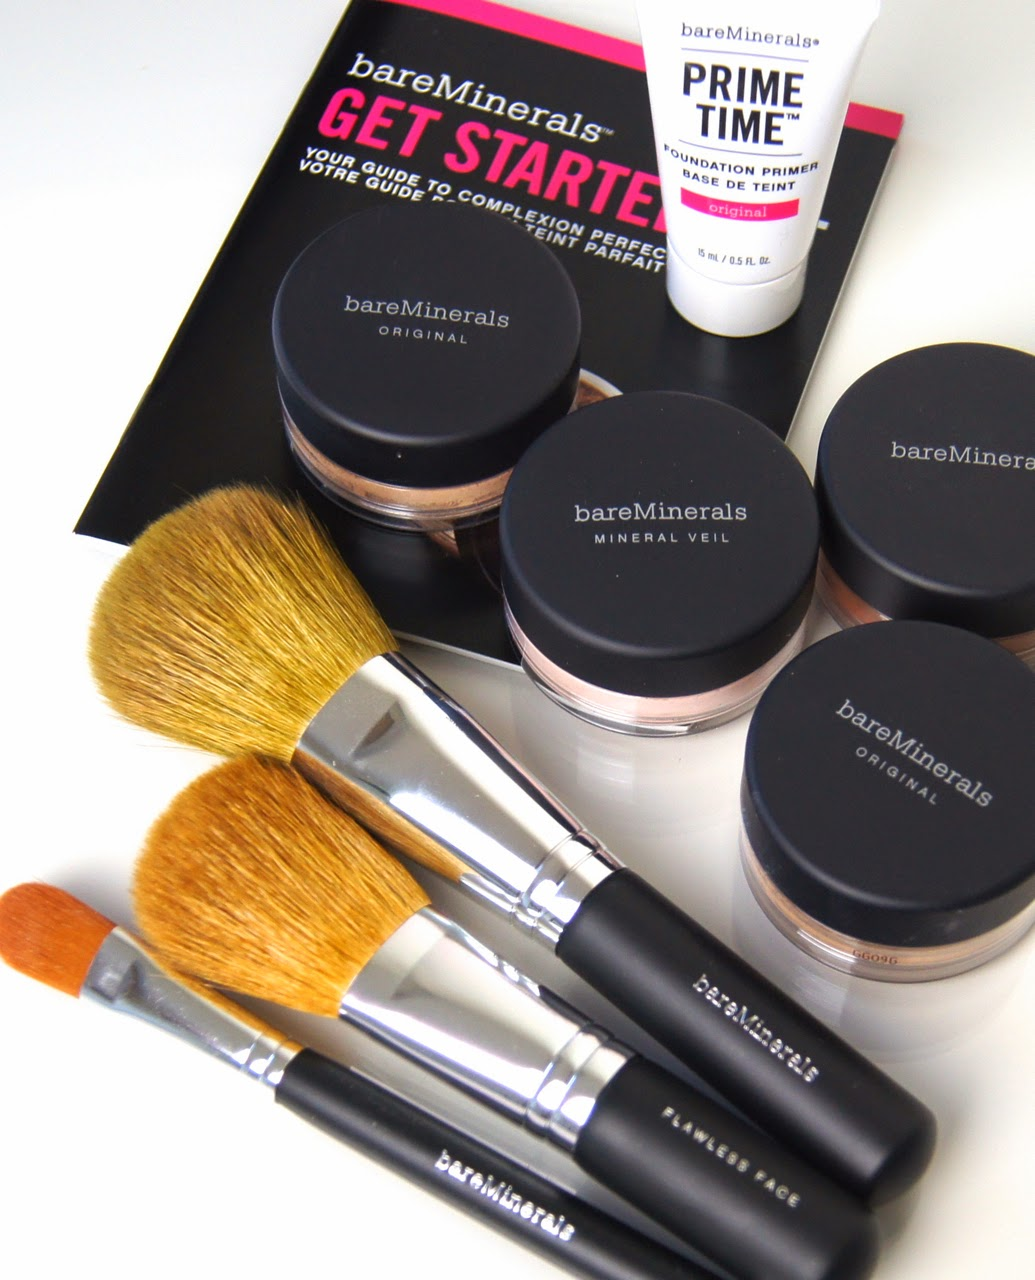 bare minerals get started bundle kit review original spa 15 foundation prime time primer mineral veil warmth powder bronzer brushes